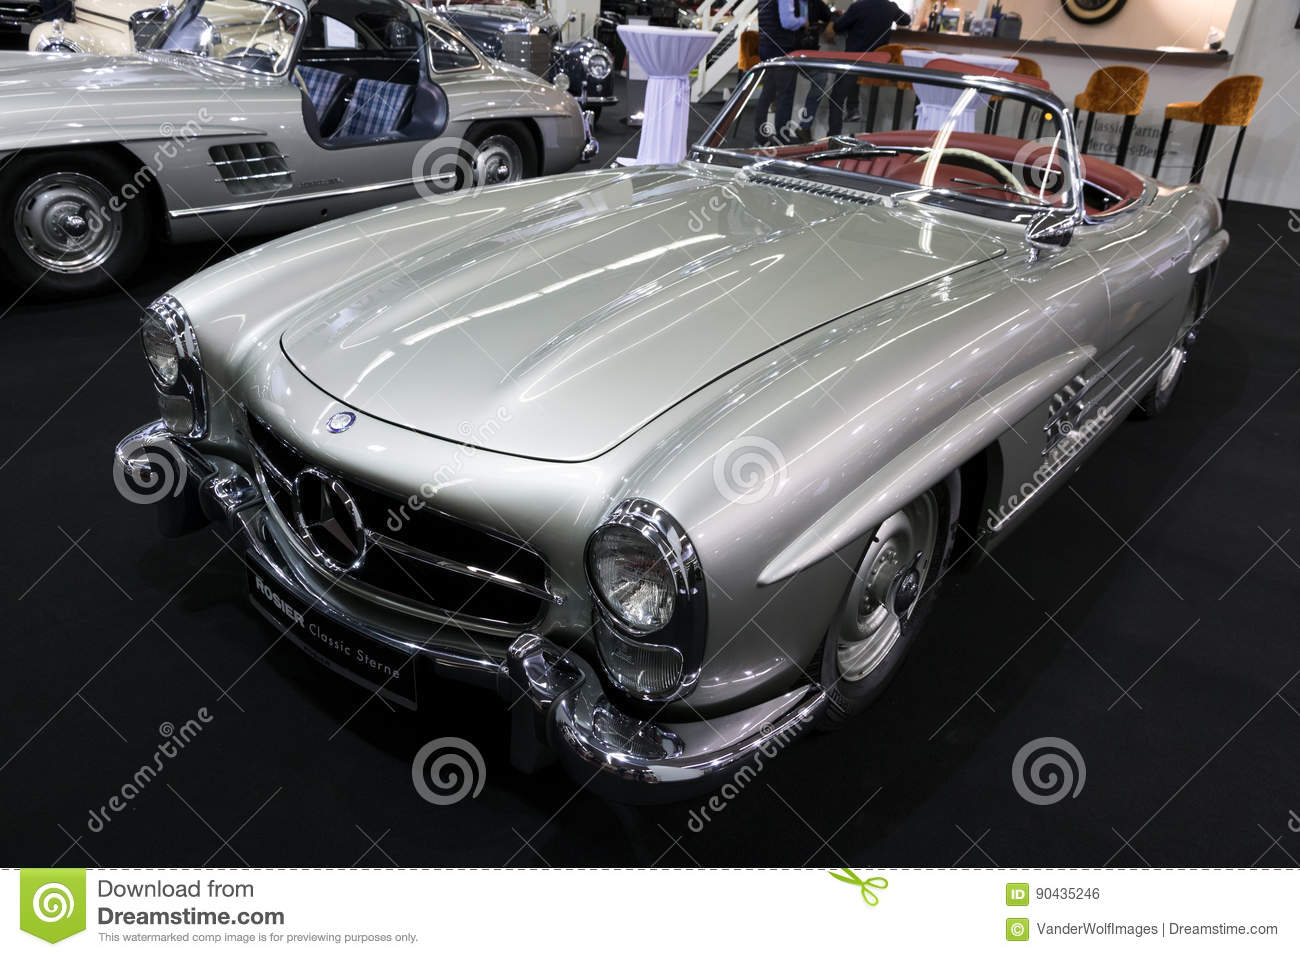 1957 mercedes benz 300 sl roadster w198 vintage car - Mercedes car show ...